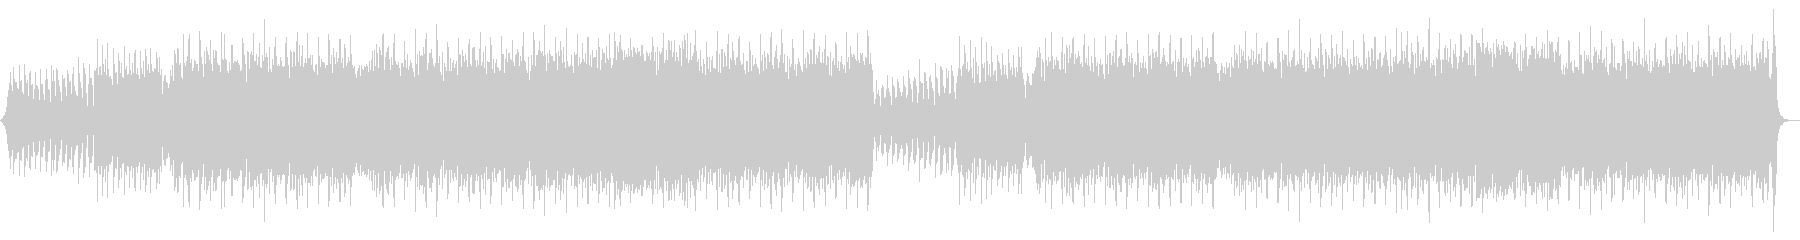 A feeling of running, retro, cool, flashy, mysterious's unreproduced waveform